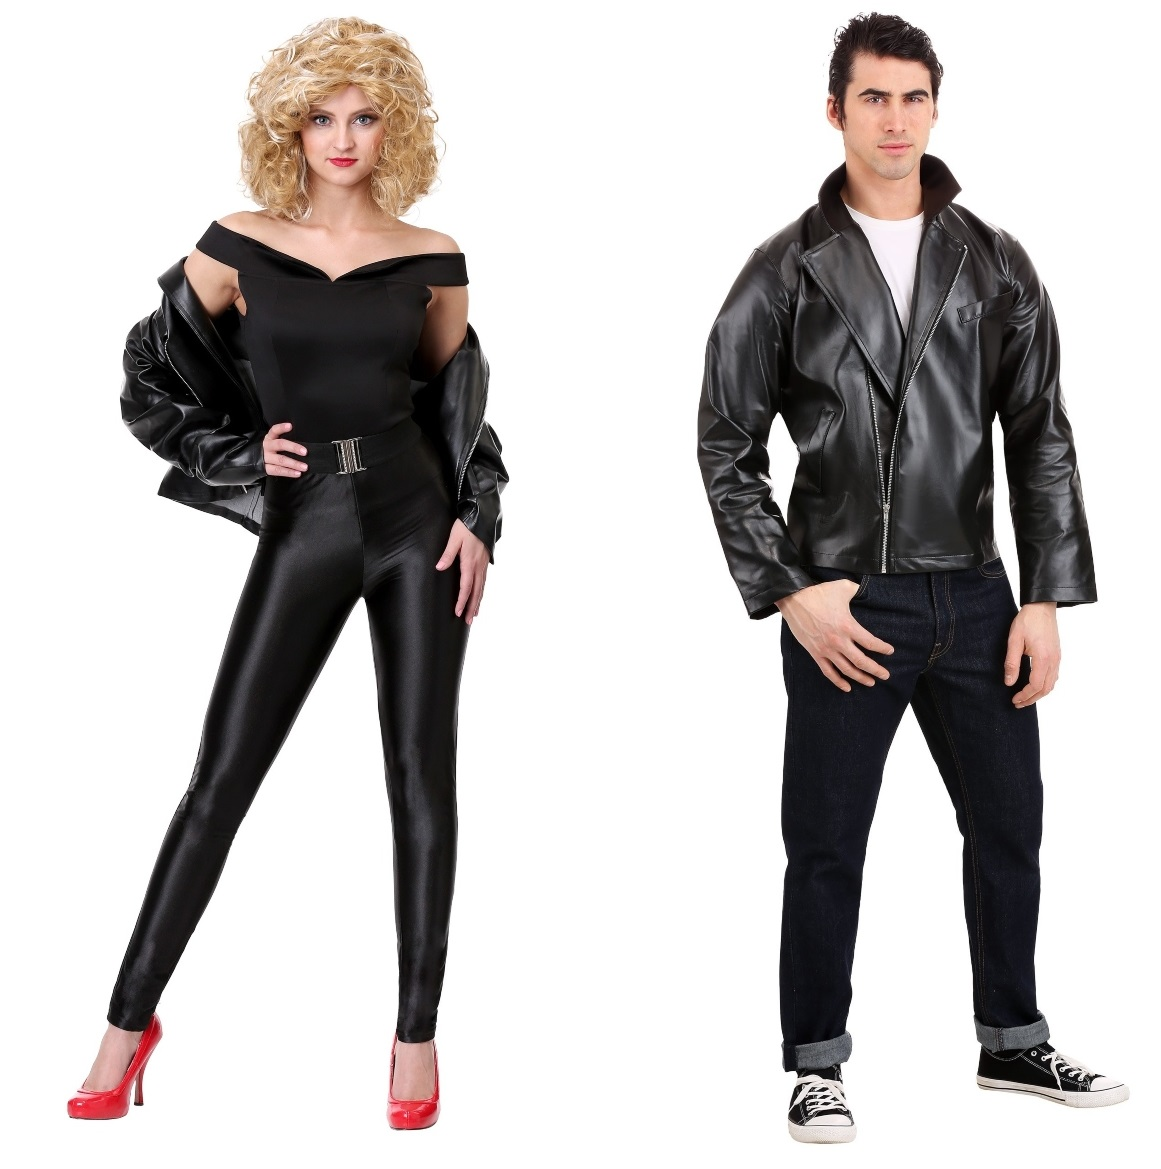 Sandy and Danny Couples Costumes